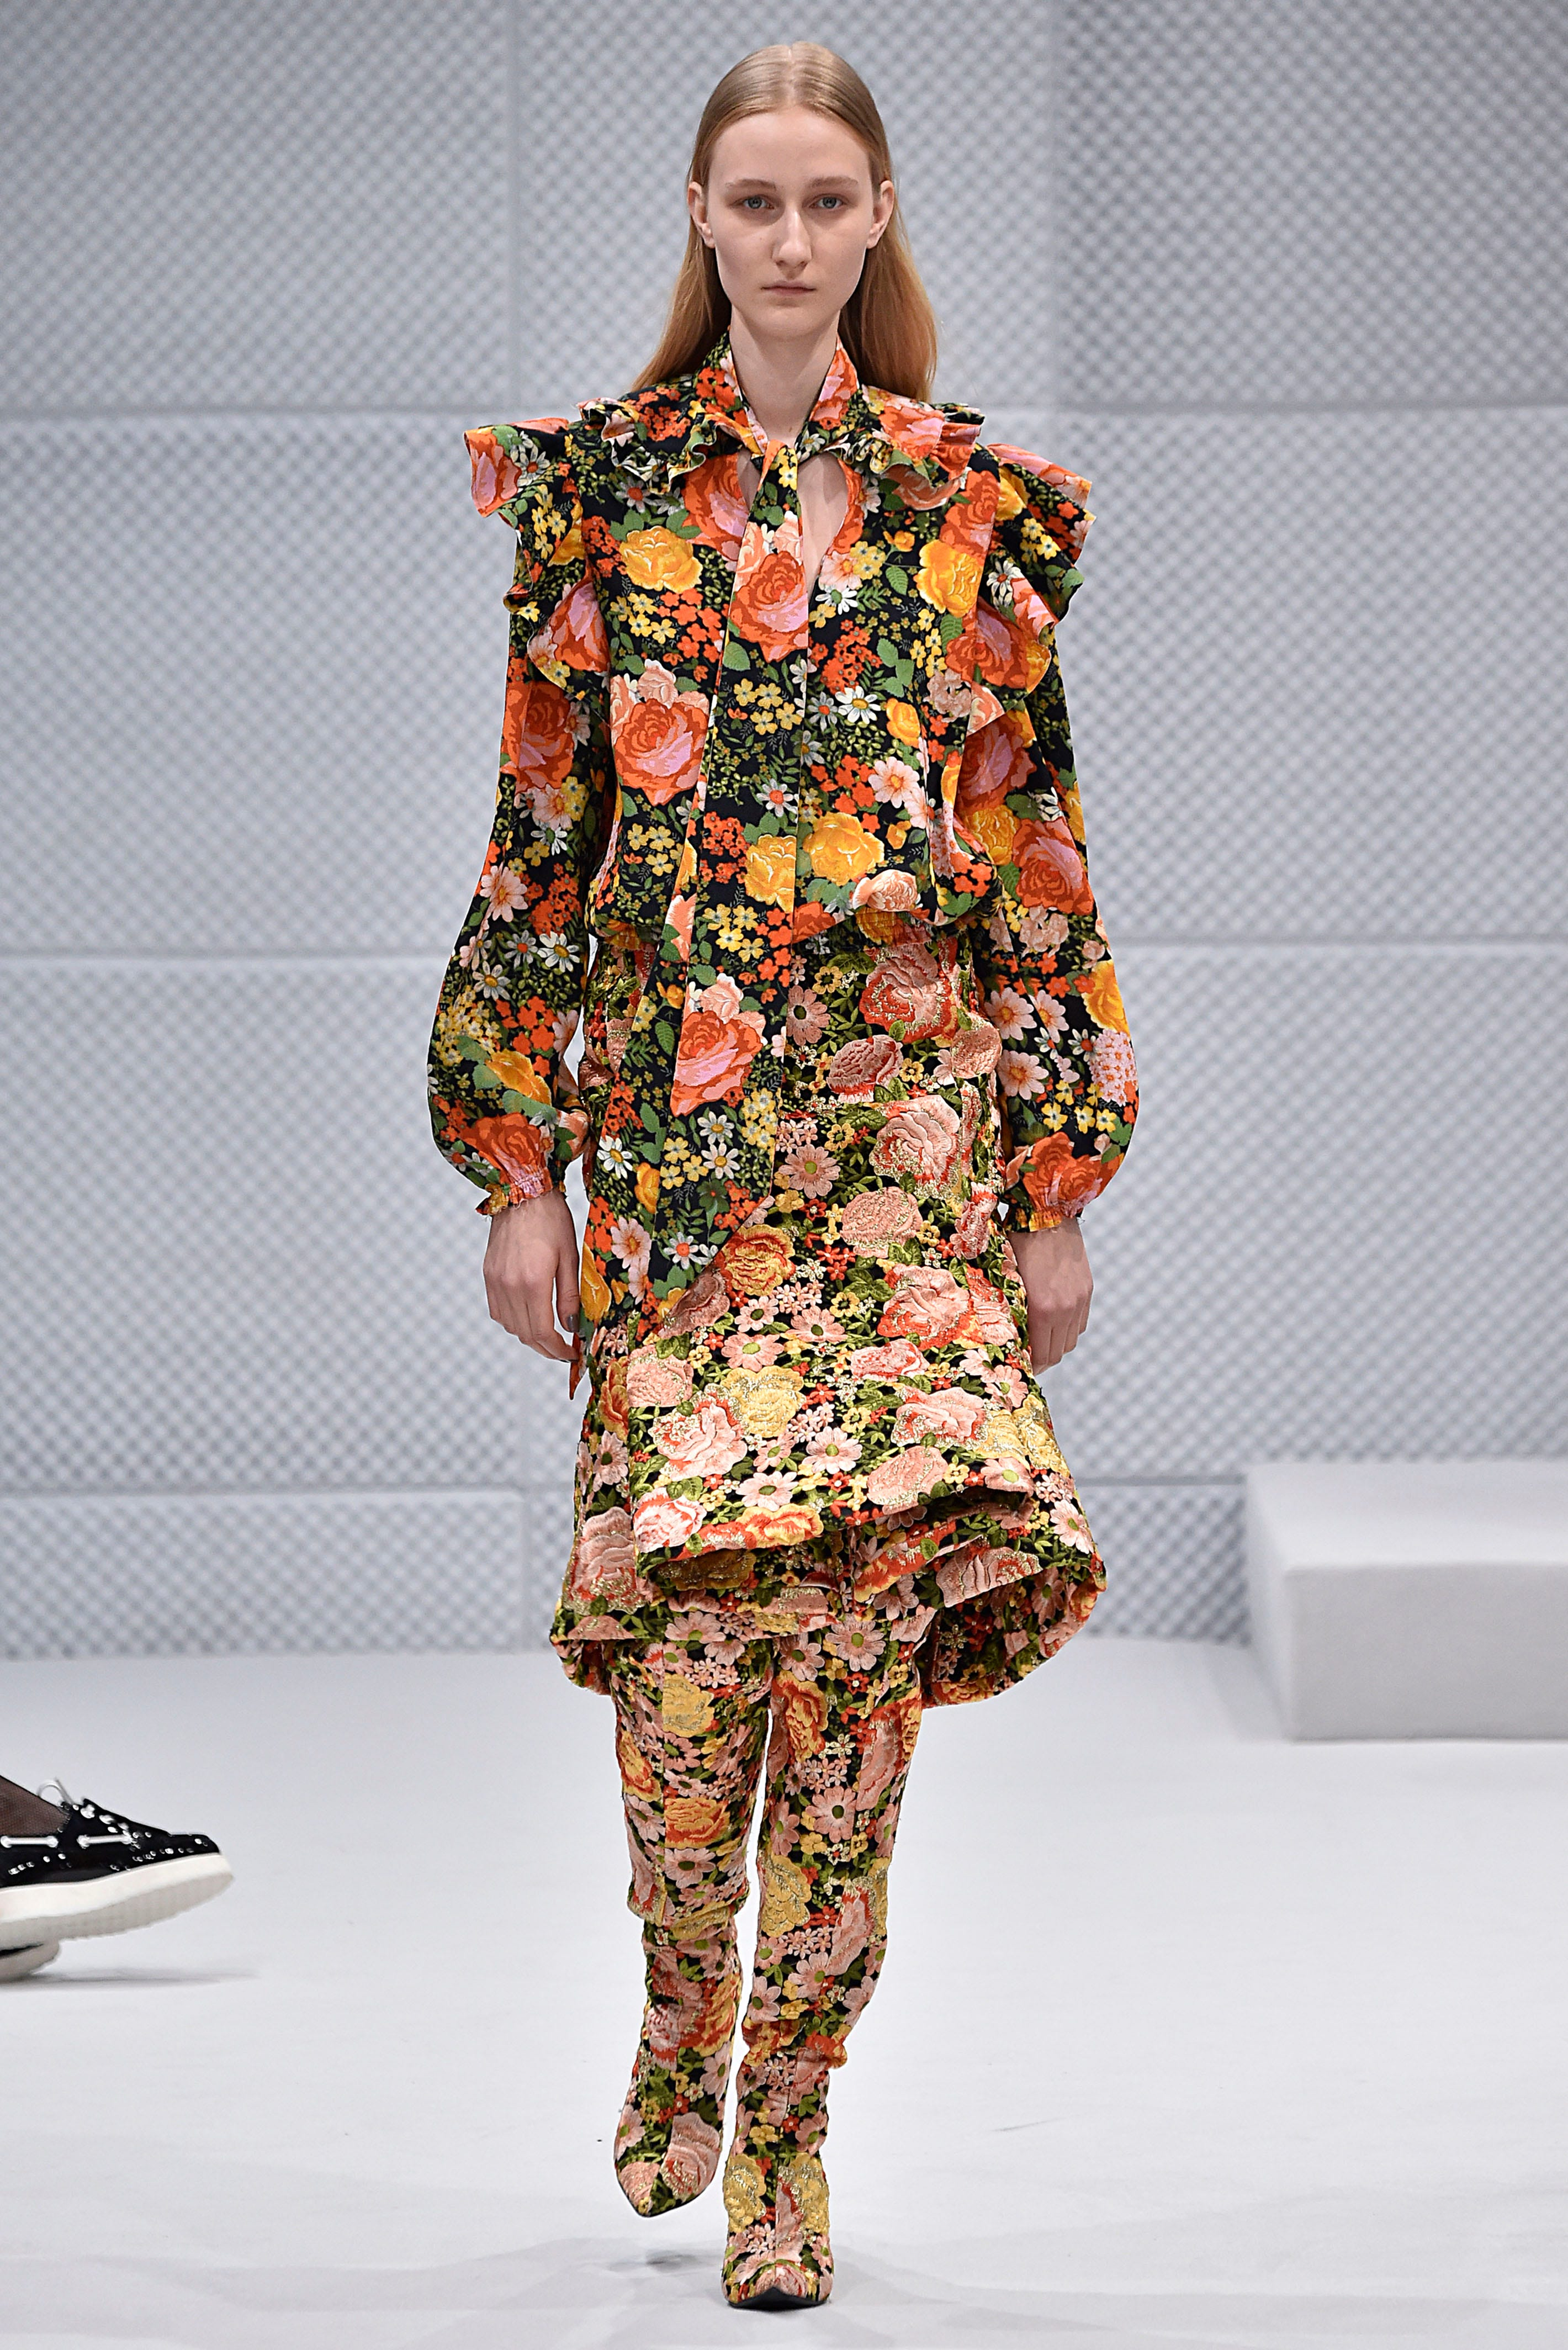 bfd330d7a61 The Fashion Week Looks That Will End Up In Fast Fashion